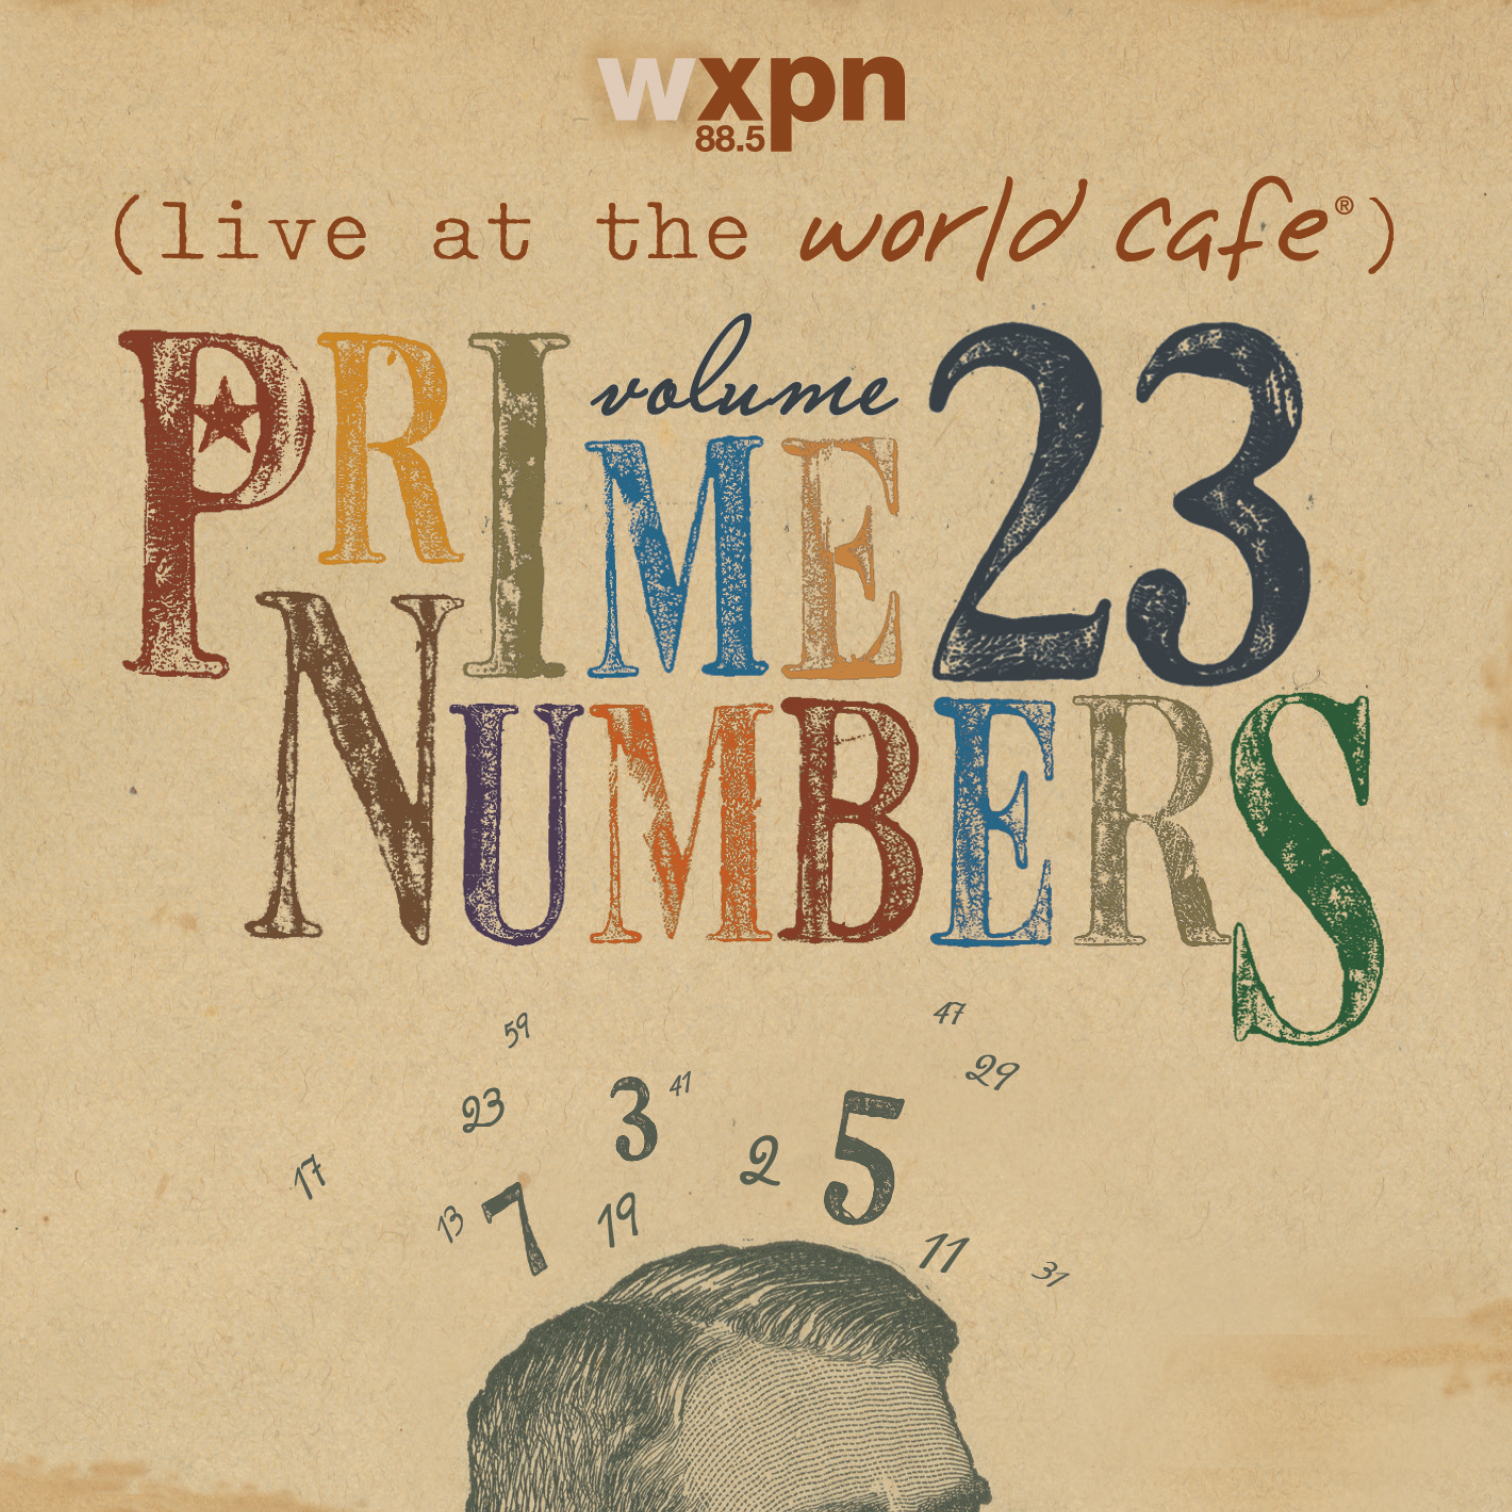 CD package design (six-panel jewel case) for WXPN Live at the World Cafe, Volume 23.